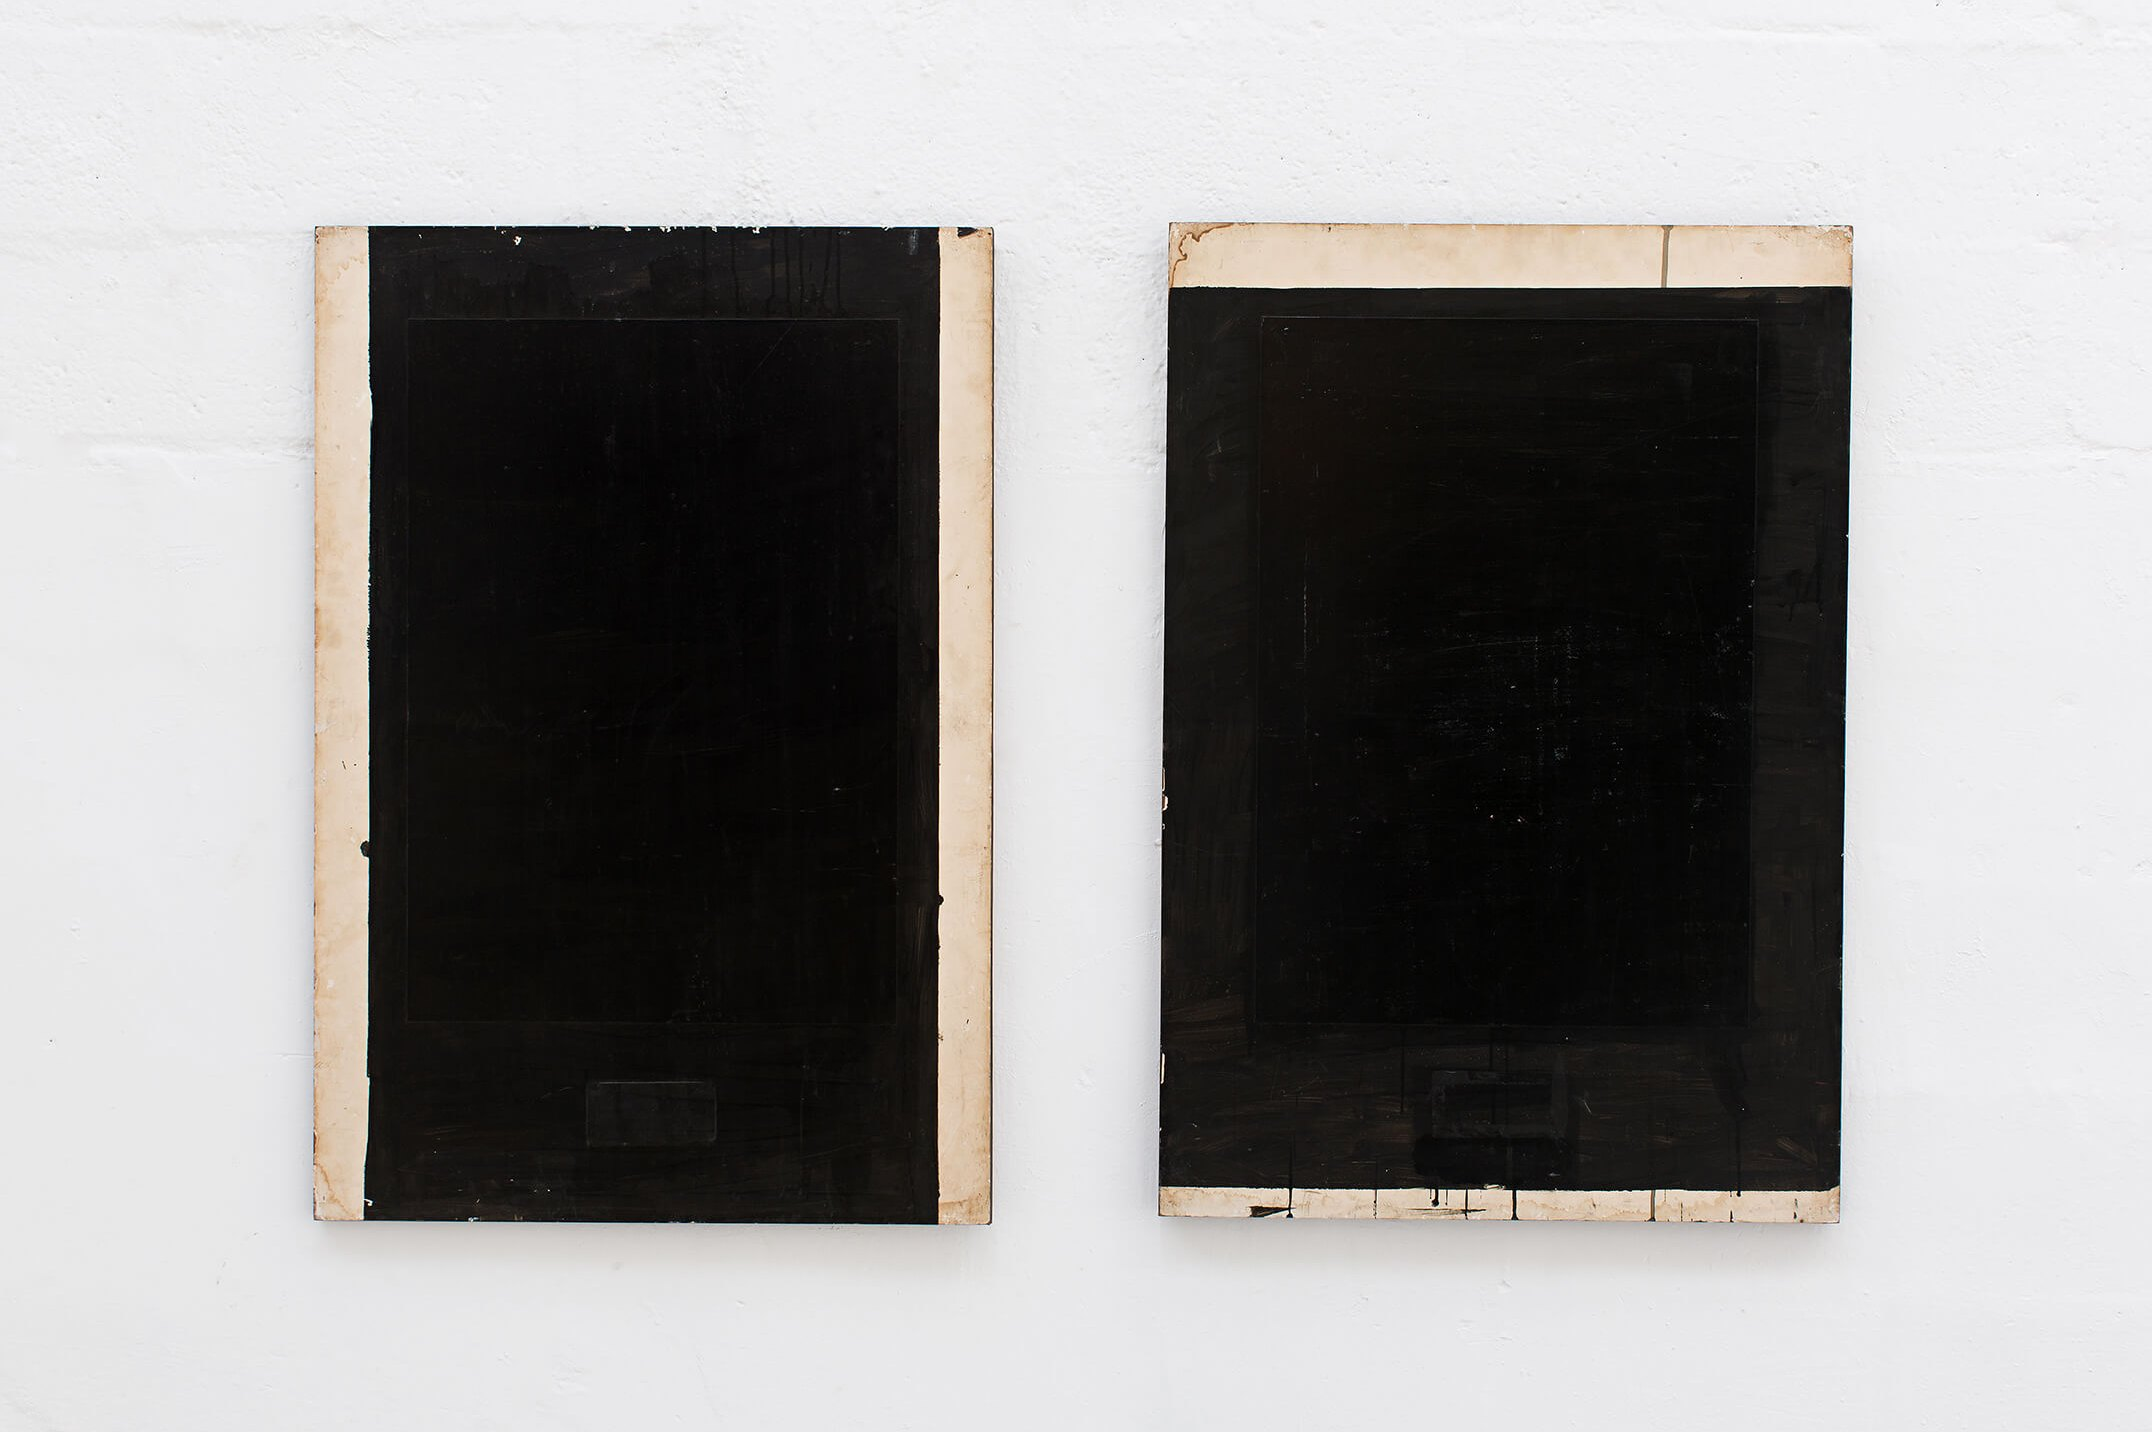 Deyson Gilbert,<em> Diptic</em>, 2008, acrylic on wood, 98 × 67 cm (each) - Mendes Wood DM